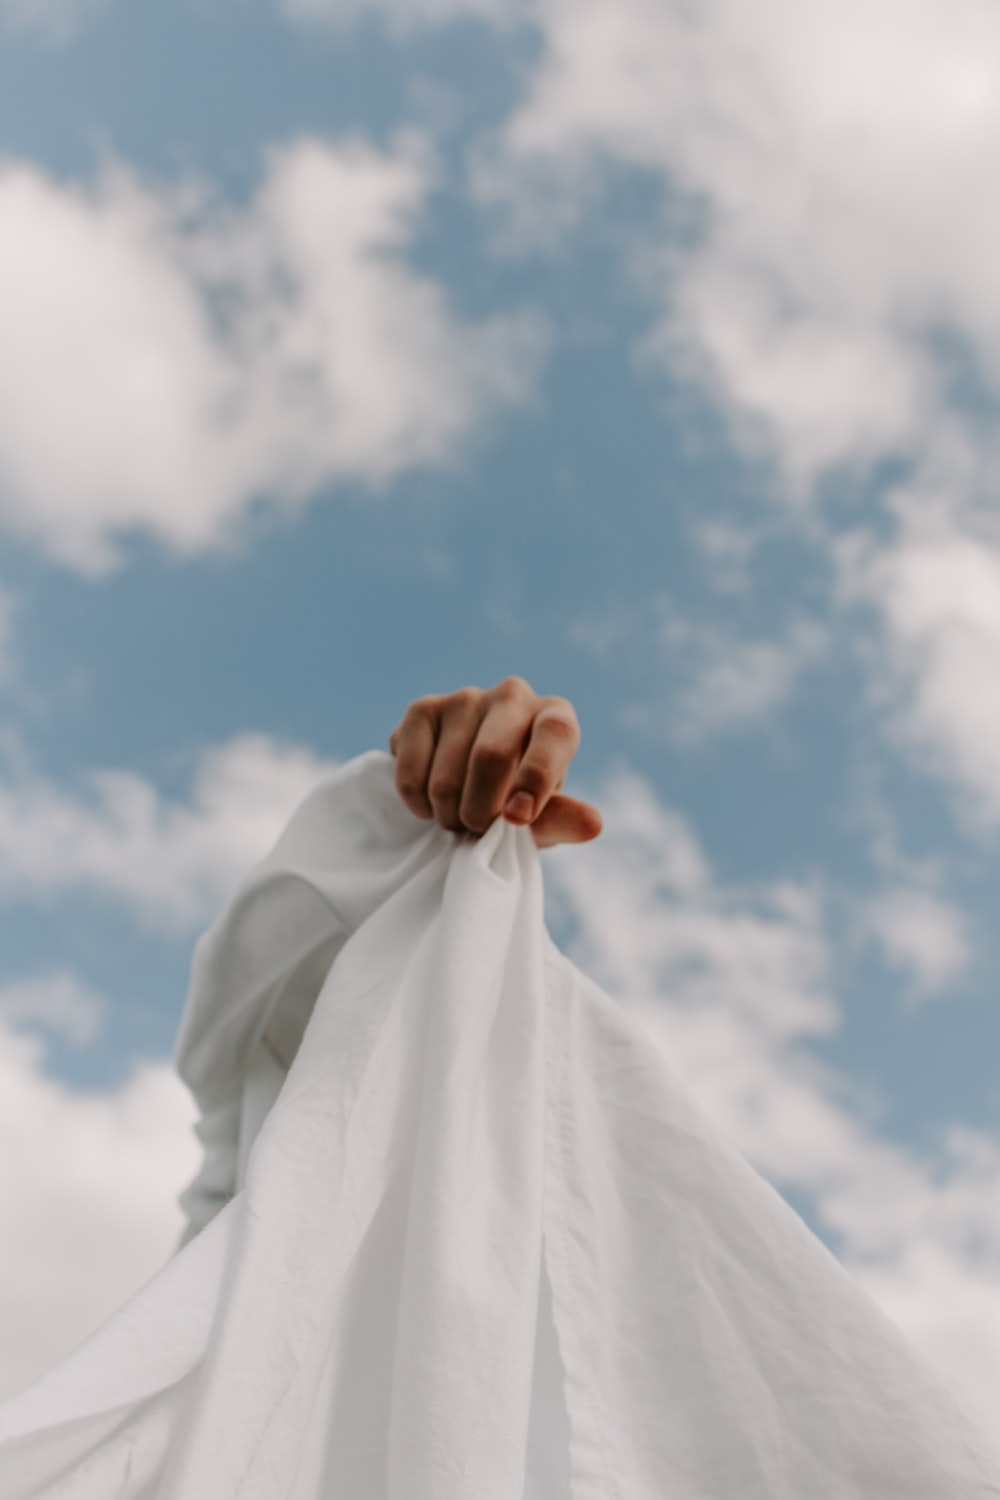 person in white dress shirt under blue sky during daytime